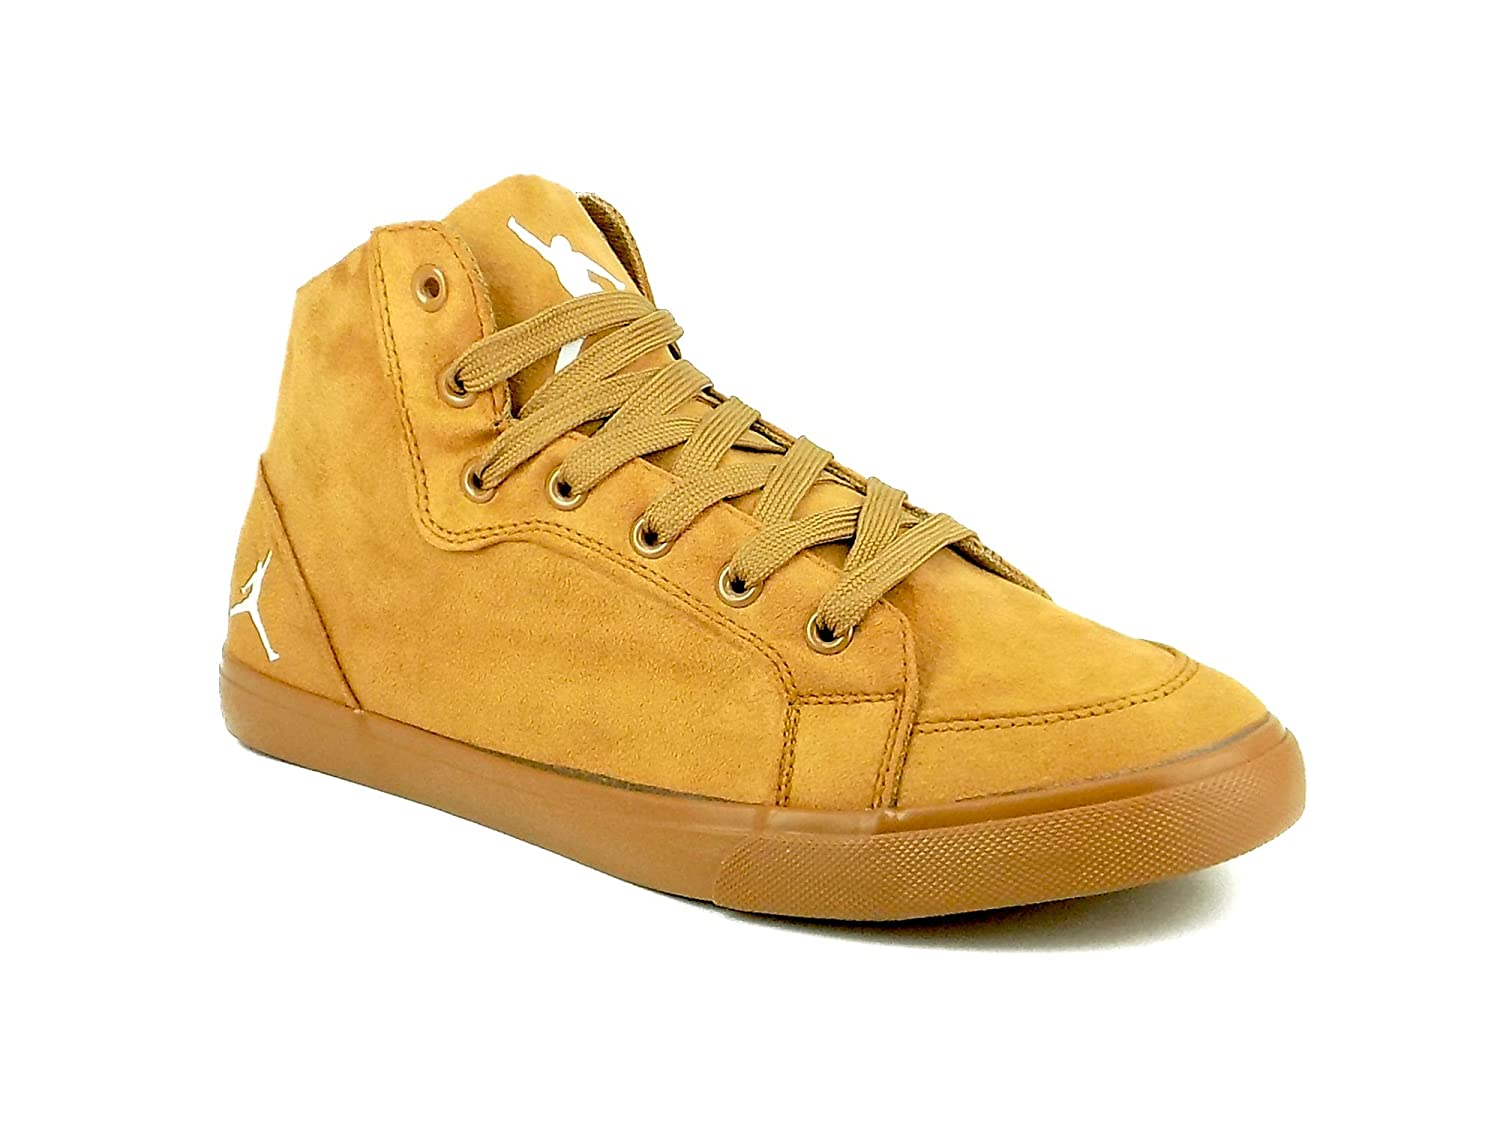 Series Suede Tan Casual Shoes at Amazon